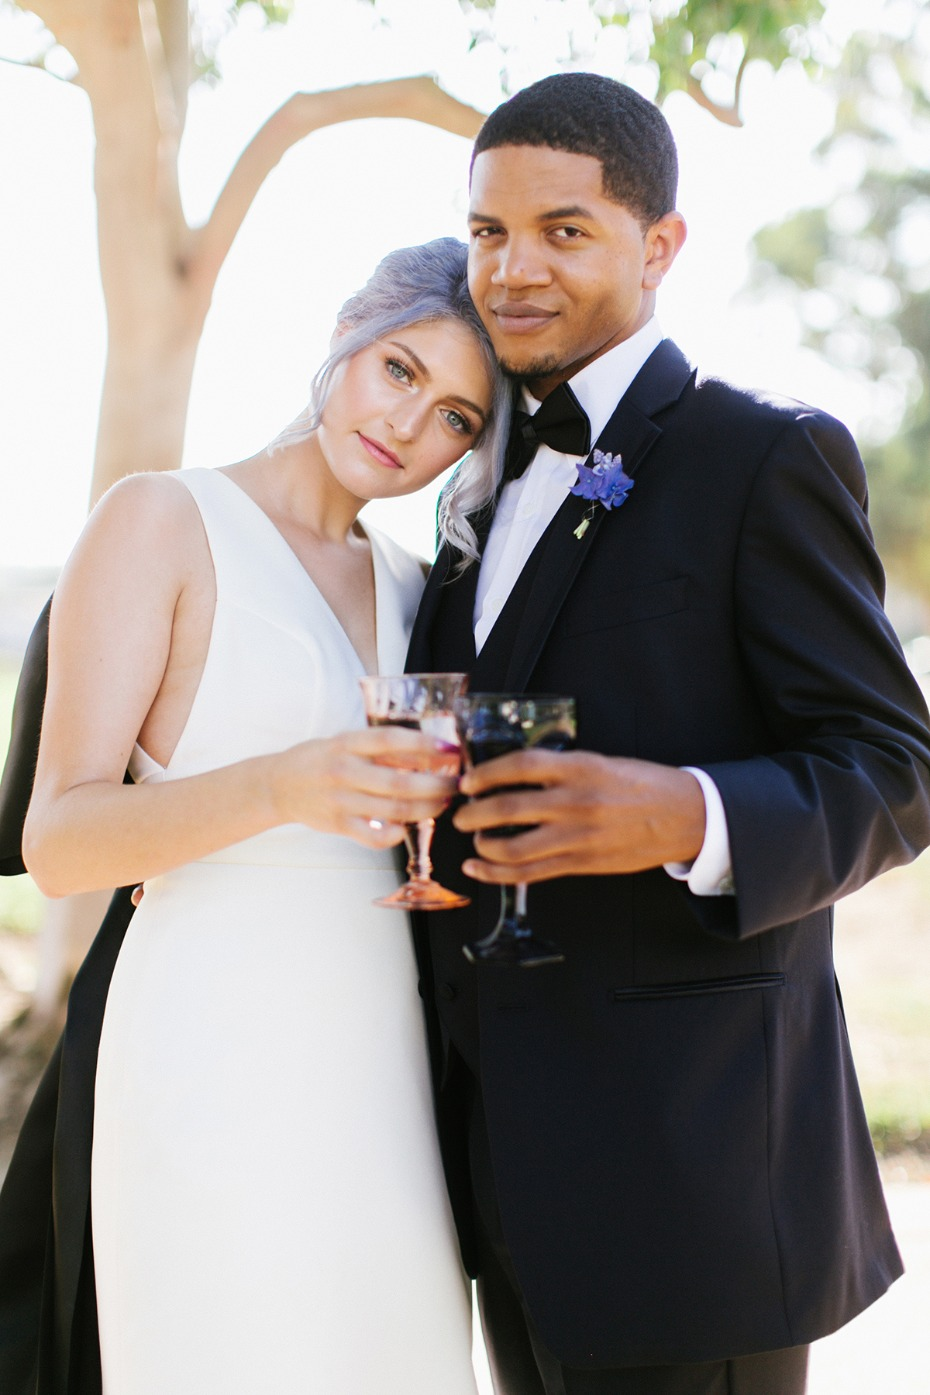 Cheers to these Modern lavender wedding ideas